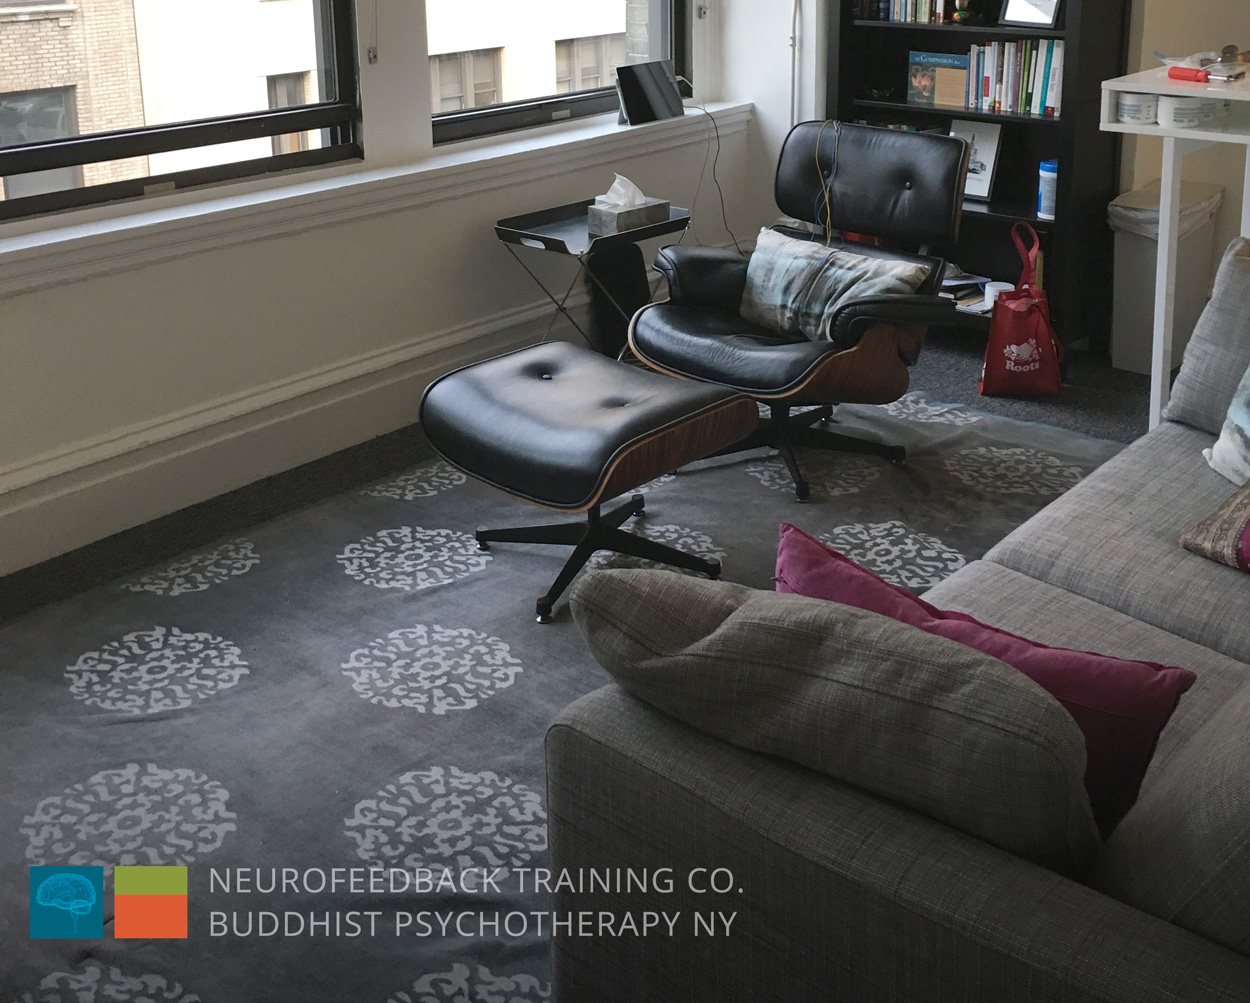 buddhist-psychotherapy-ny-clinic-union-square-office-nyc-therapist-group